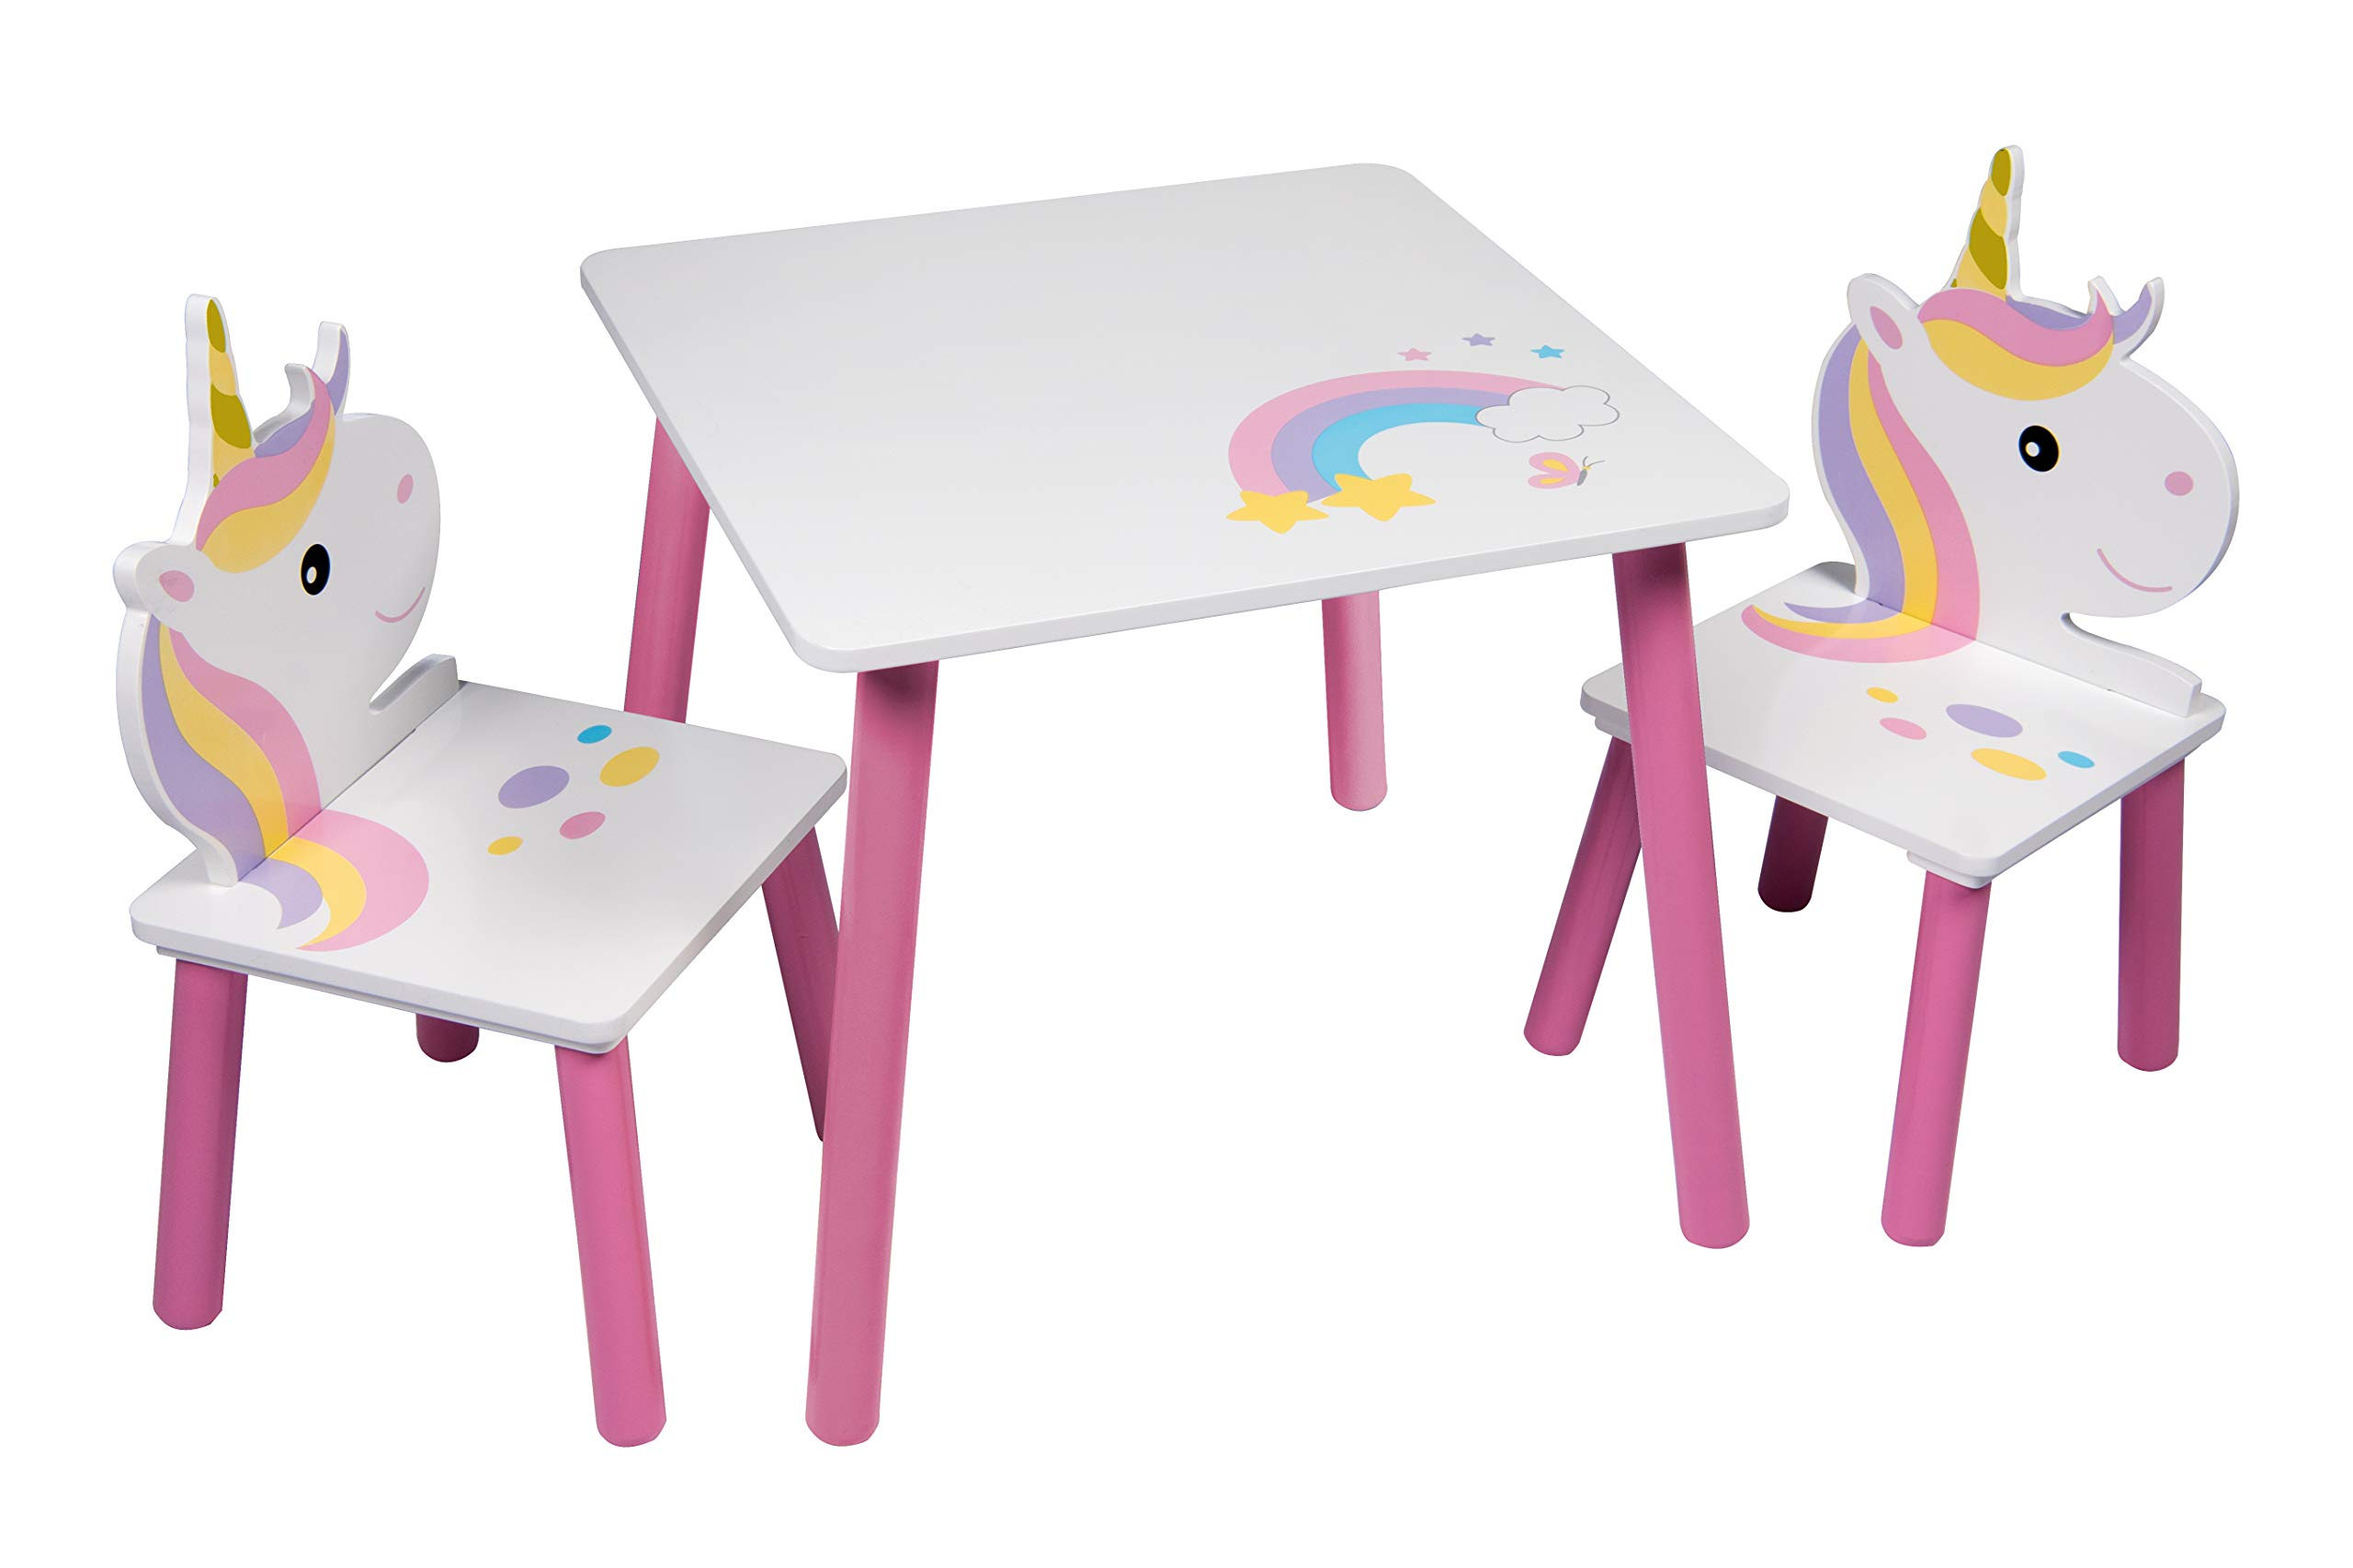 Unicorn Table And 2 Chairs Set Childrens Kids Toddler Nursery Playroom Furniture by Global toys